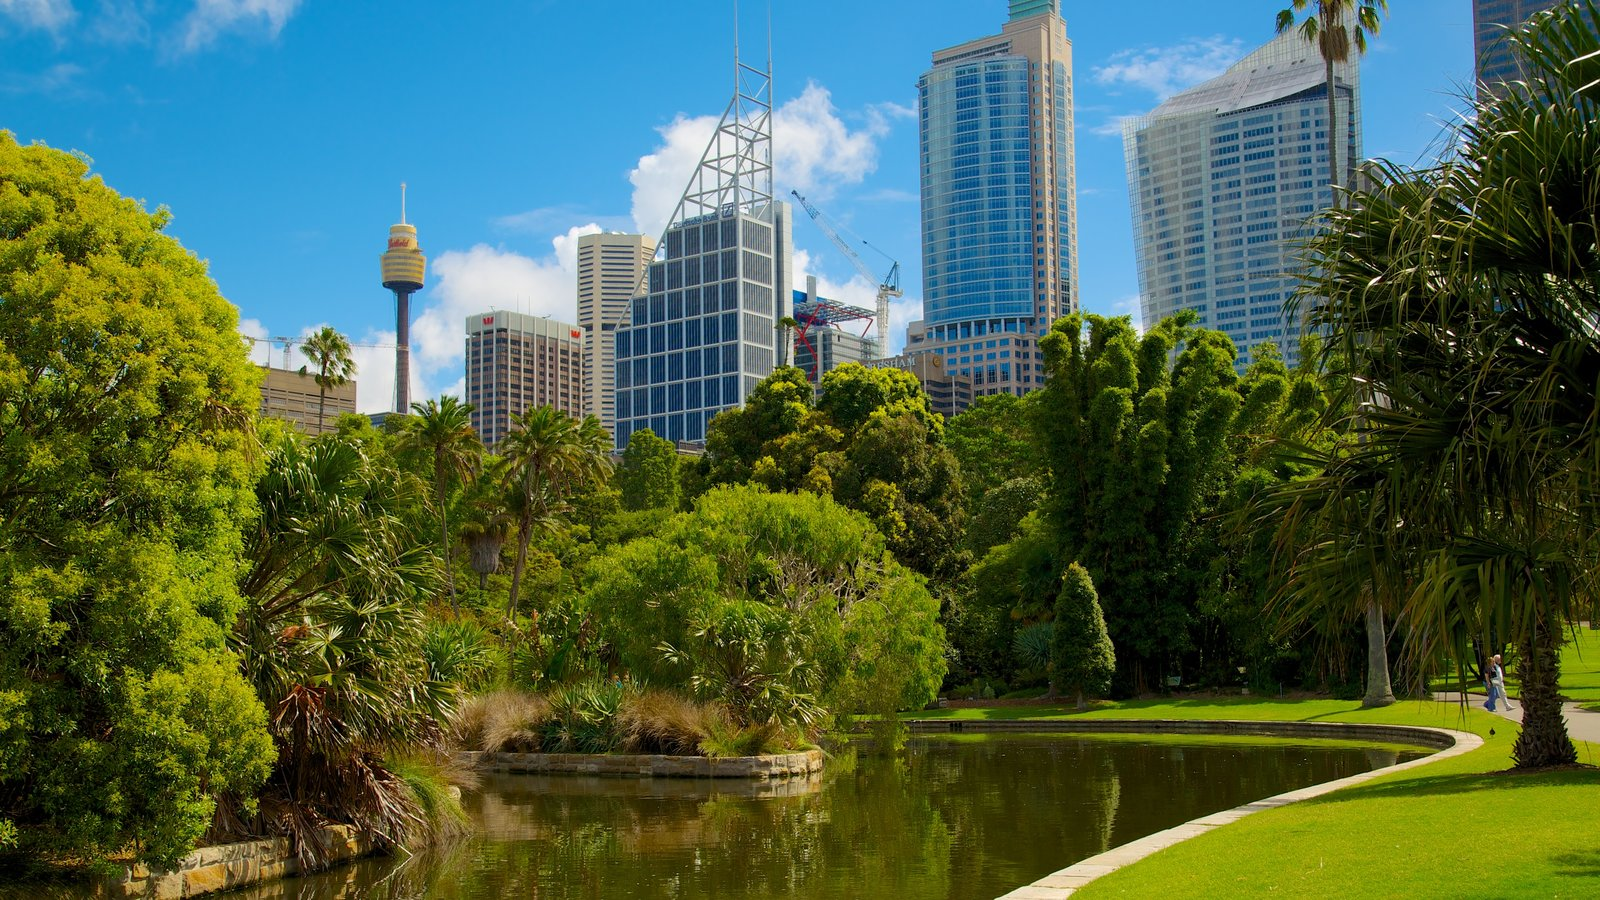 Sydney featuring a pond, a garden and a skyscraper